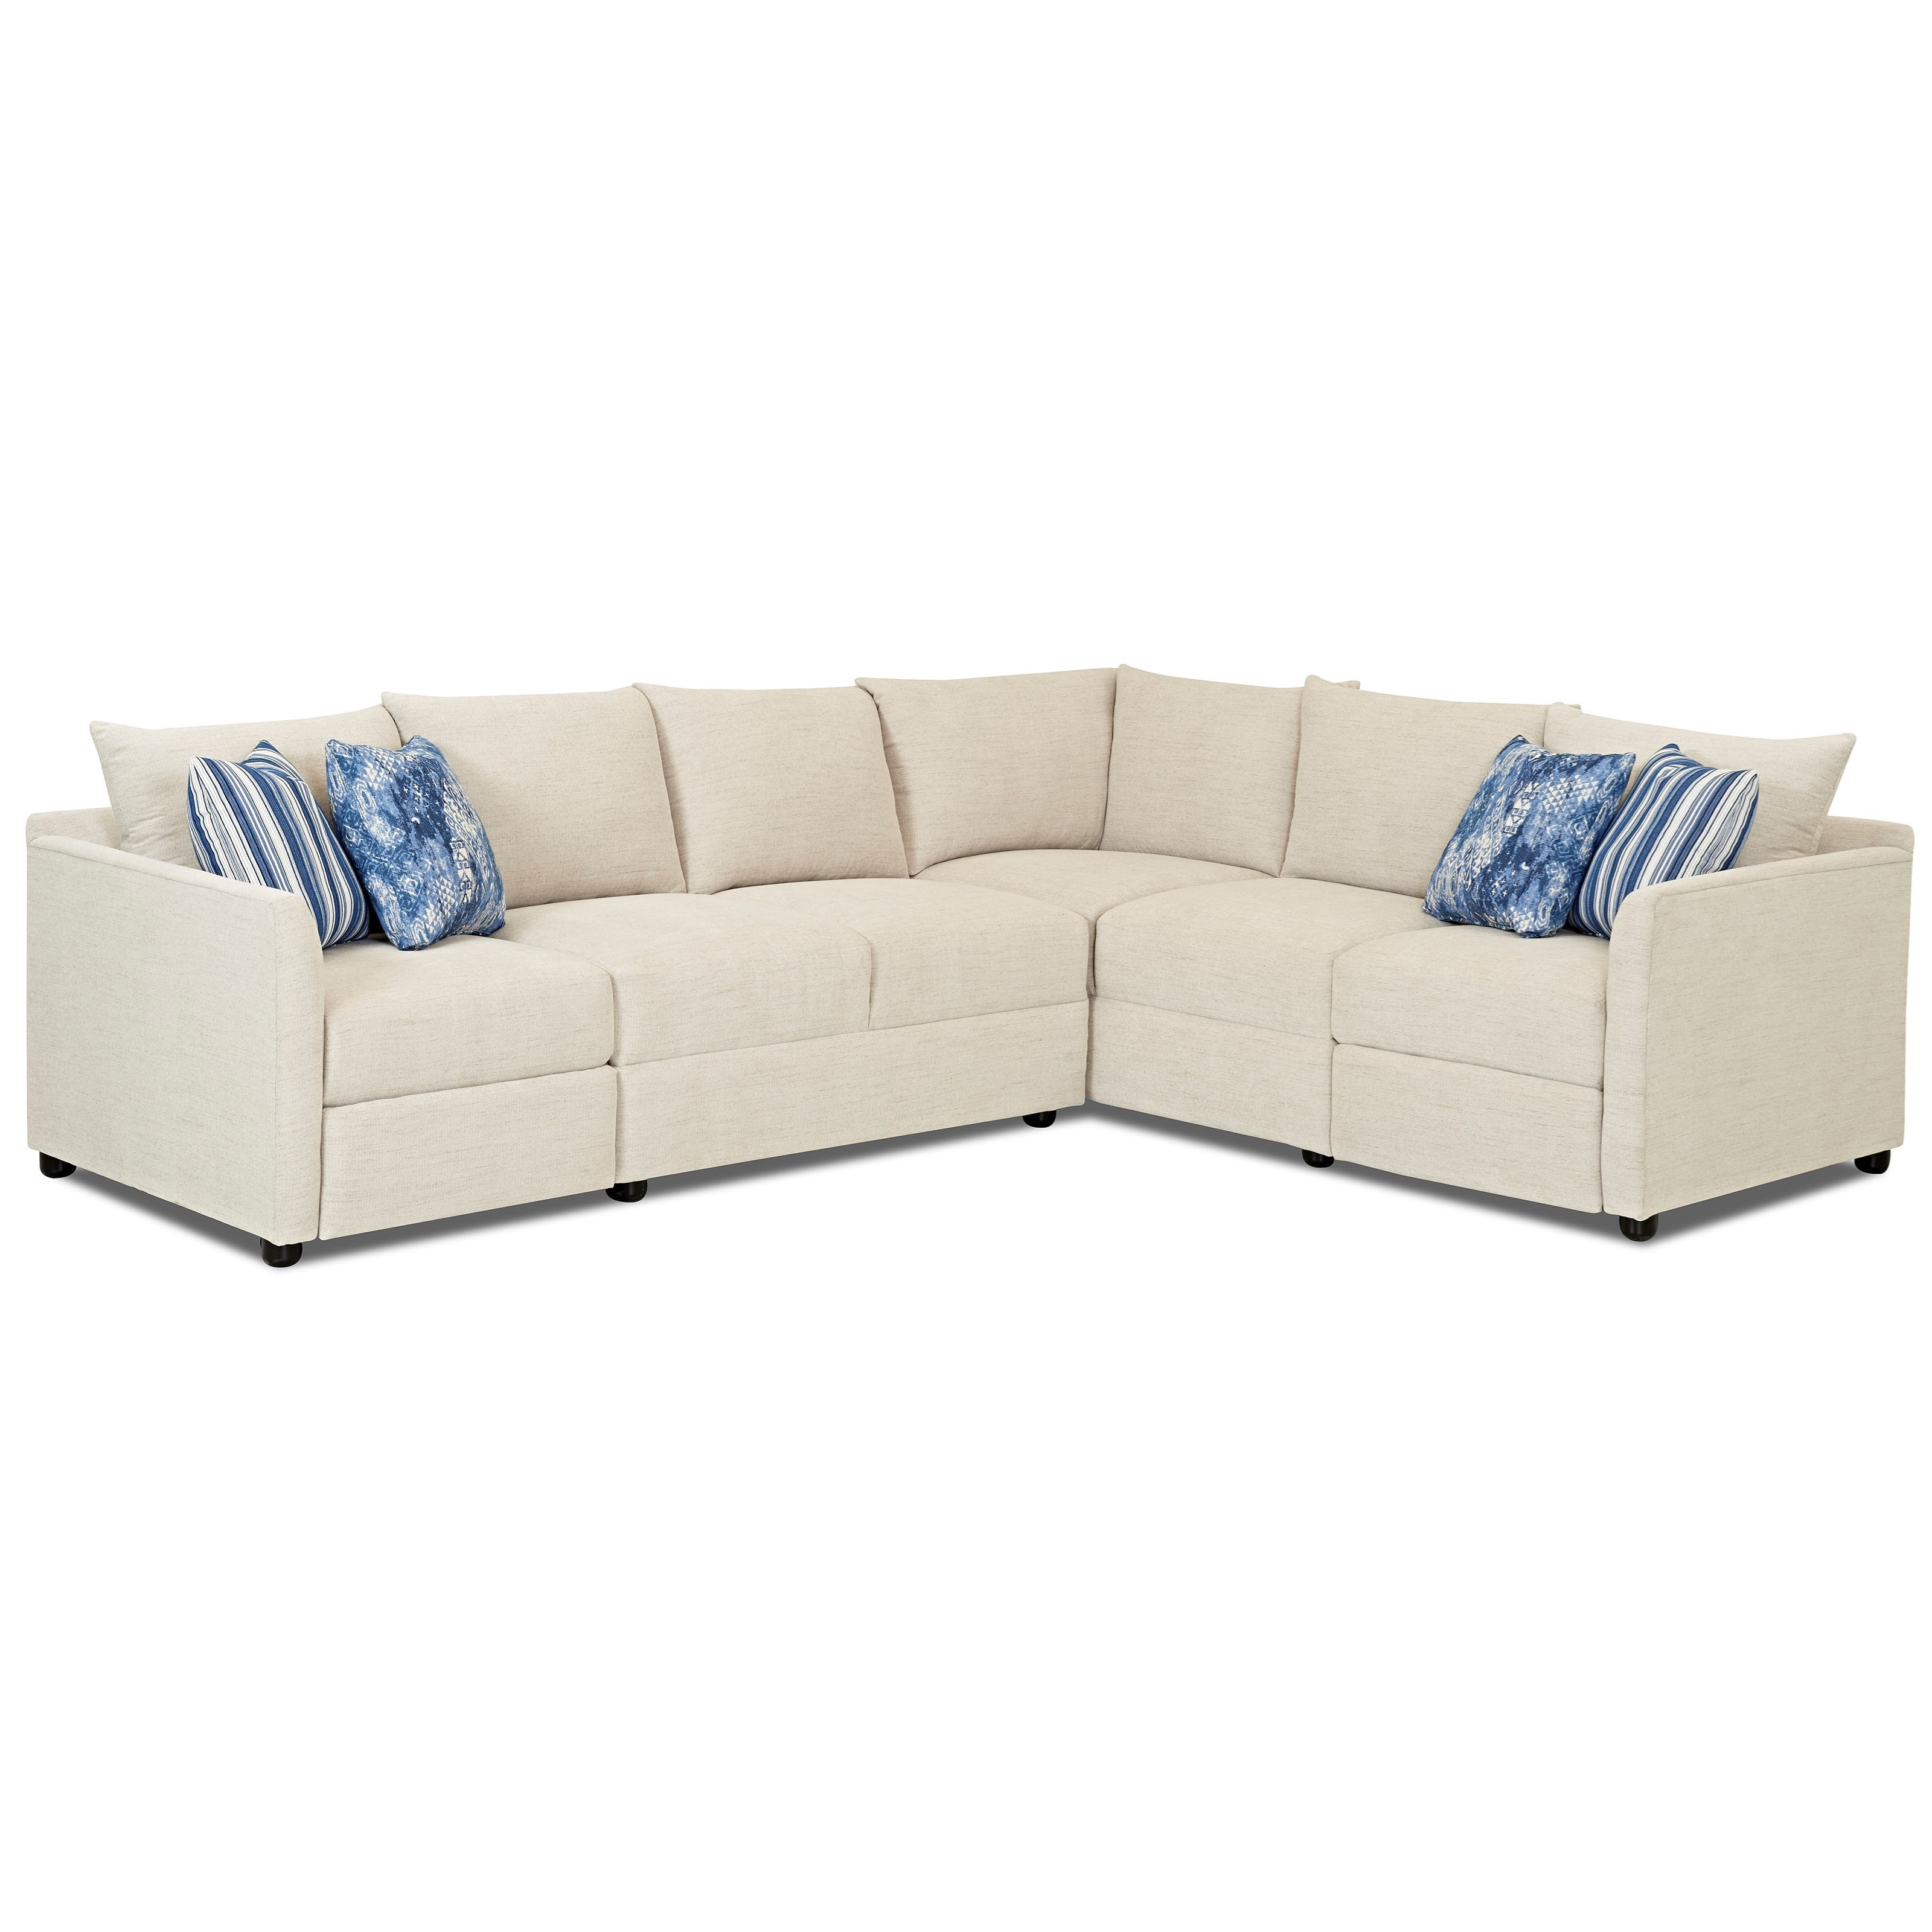 Two Piece Power Hybrid Reclining Sectional Sofa with RAF Corner Sofa